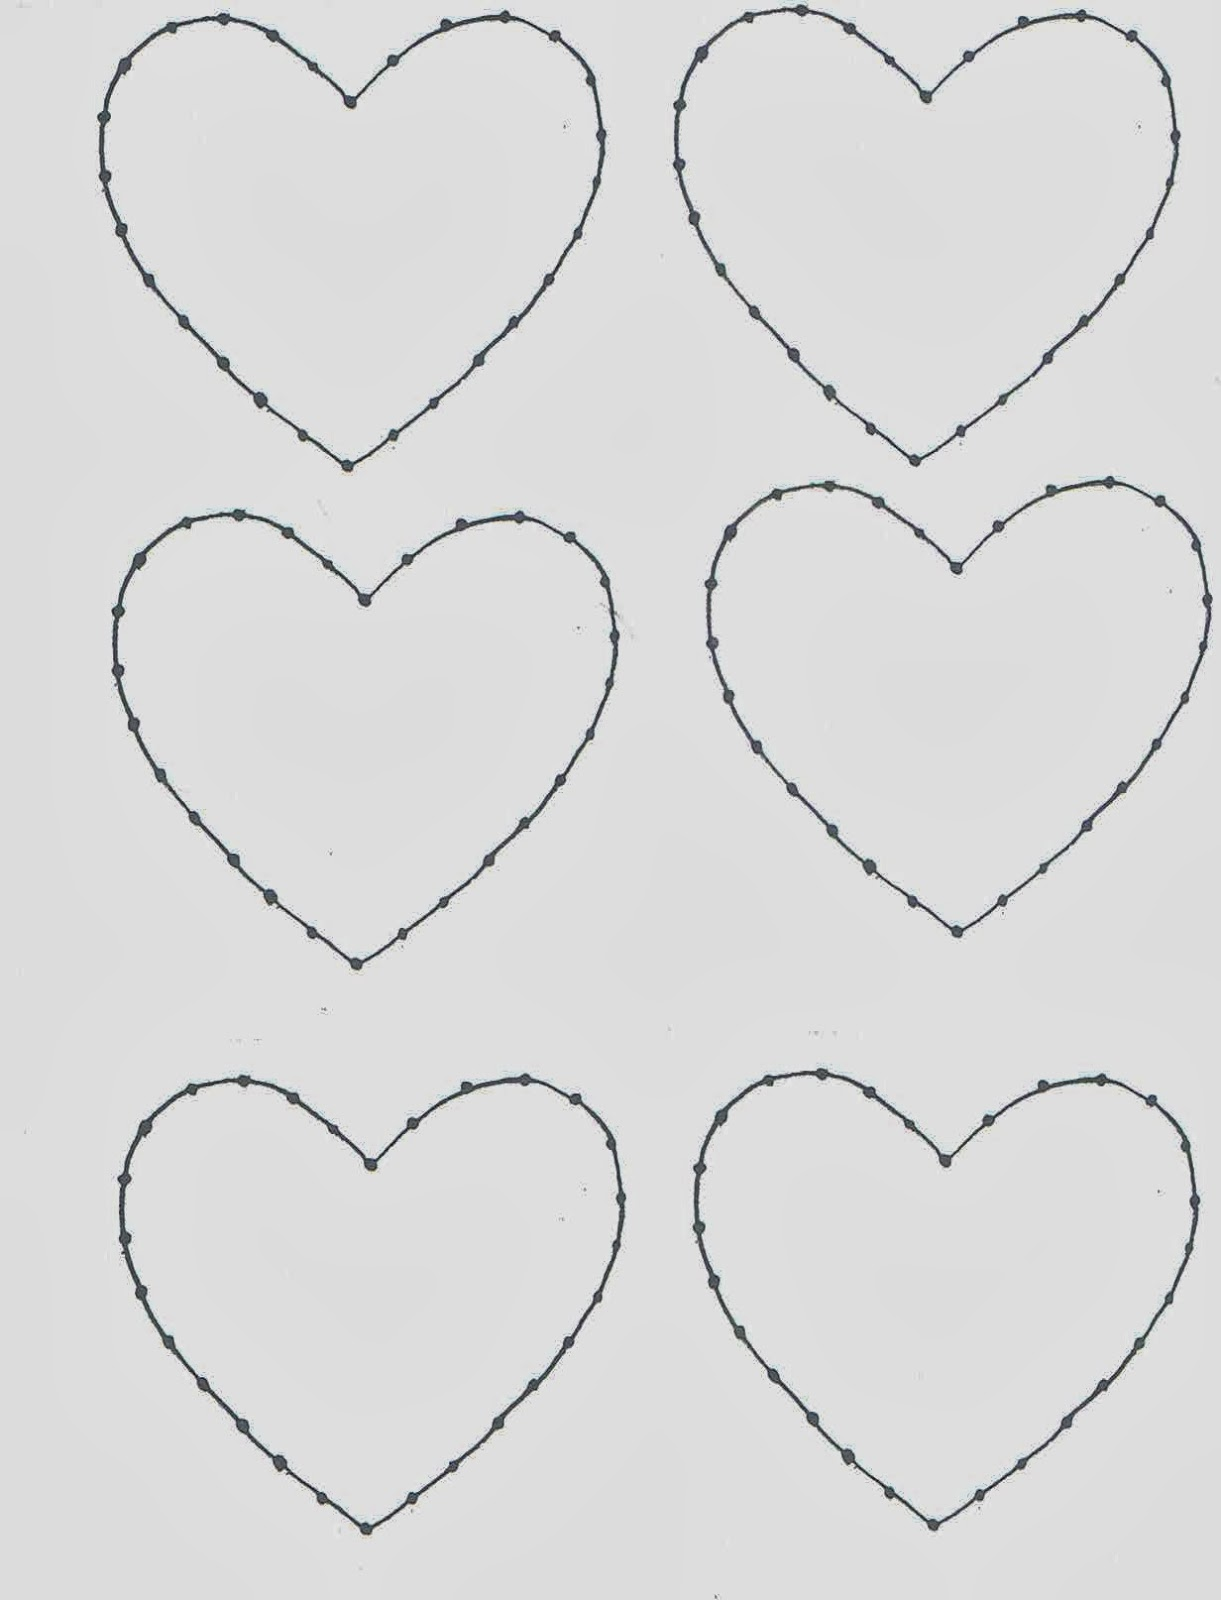 Heart Template Cut Out Cut out a heart and tack it to